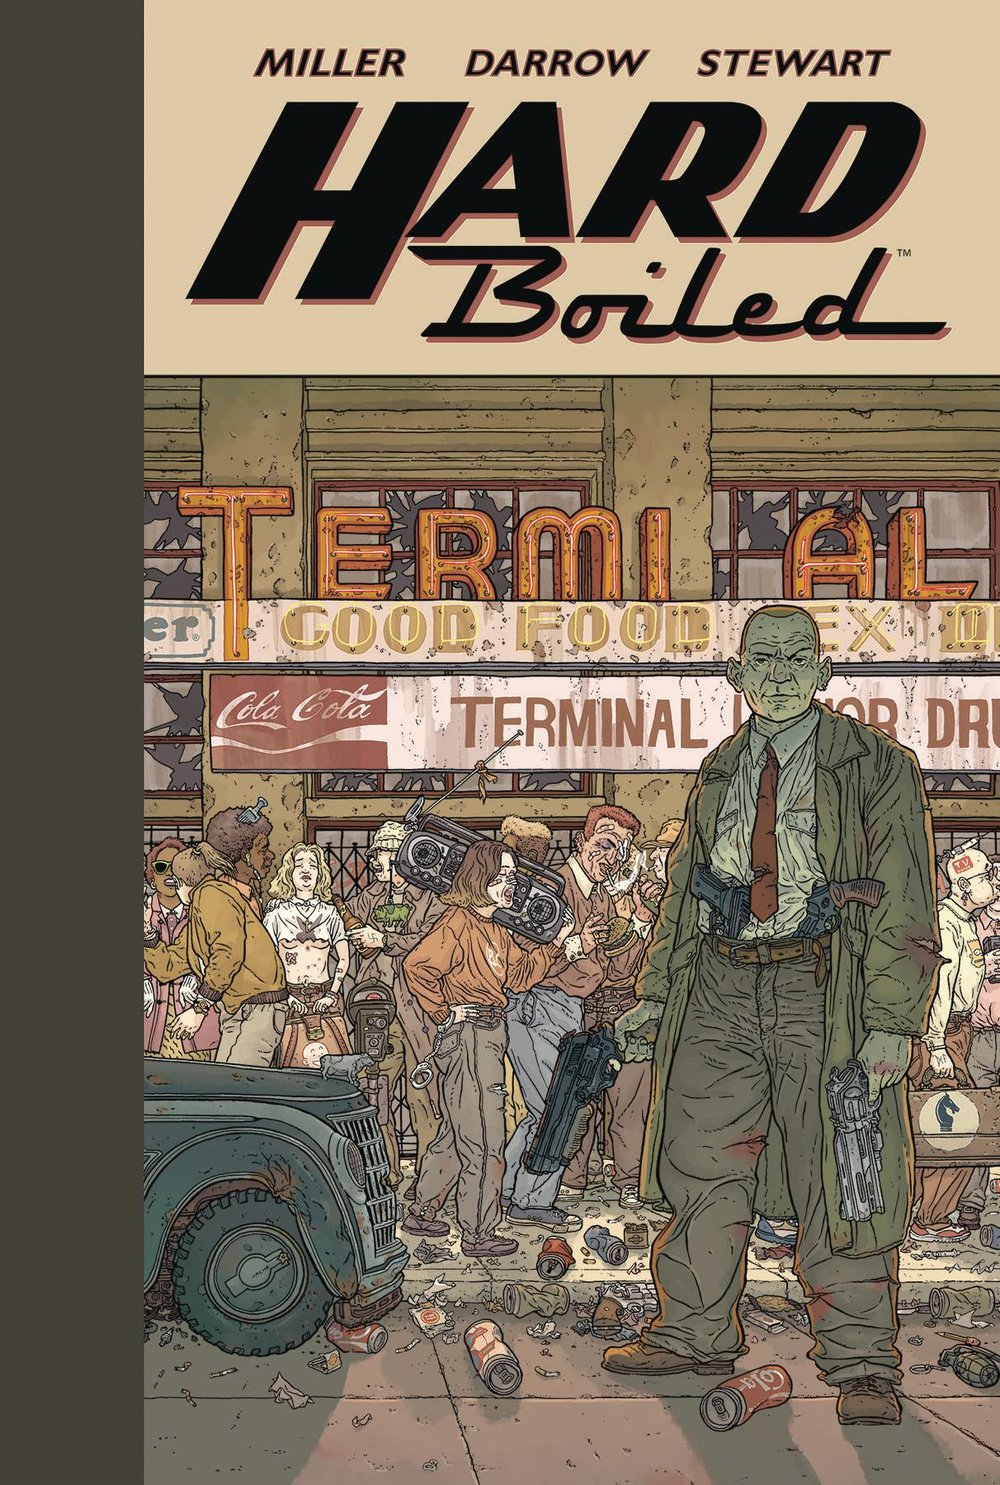 Hard Boiled - Mike's PickViolent, outrageous, and relentlessly paced, Hard Boiled deserves a place on any comic fan's shelf.  Industry legend Frank Miller (Batman: Year One) crafts a darkly humorous tale of a nightmarish future involving psychotic robots and a morally bankrupt civilization.  For me, though, the art by Geoff Darrow (Shaolin Cowboy) is what makes this book a must read.  Darrow's art is insanely intricate and detailed.  On numerous splash pages, it seems like there are whole stories going on in the background amongst the many crowd scenes.  One could easily spend a few hours just pouring over the gorgeous (and explicit) artwork.  Reminiscent of both THE TERMINATOR and BLADE RUNNER, Hard Boiled is available now in a newly released hard cover.